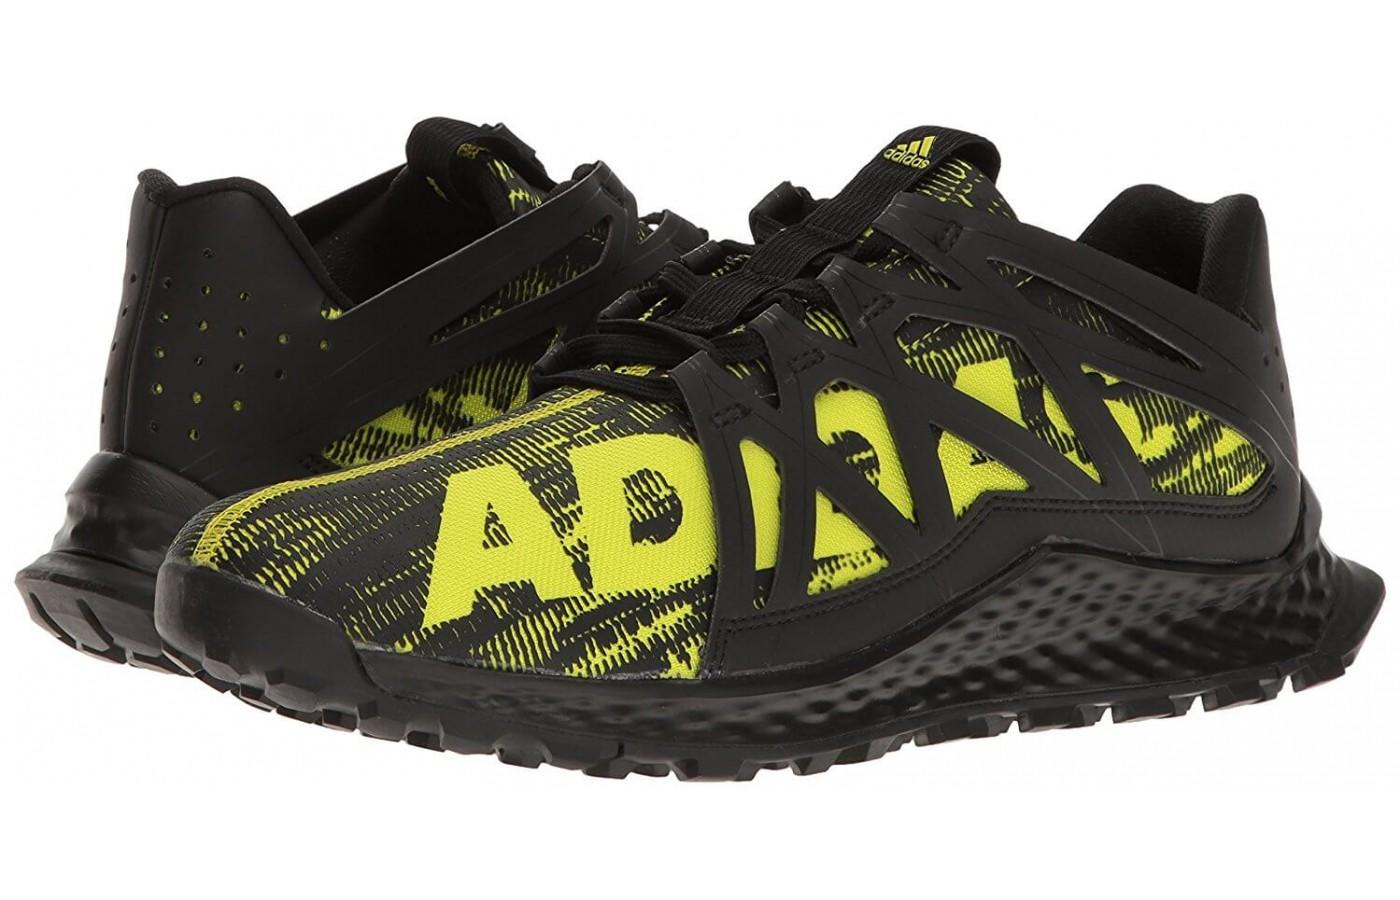 Durable and trail ready